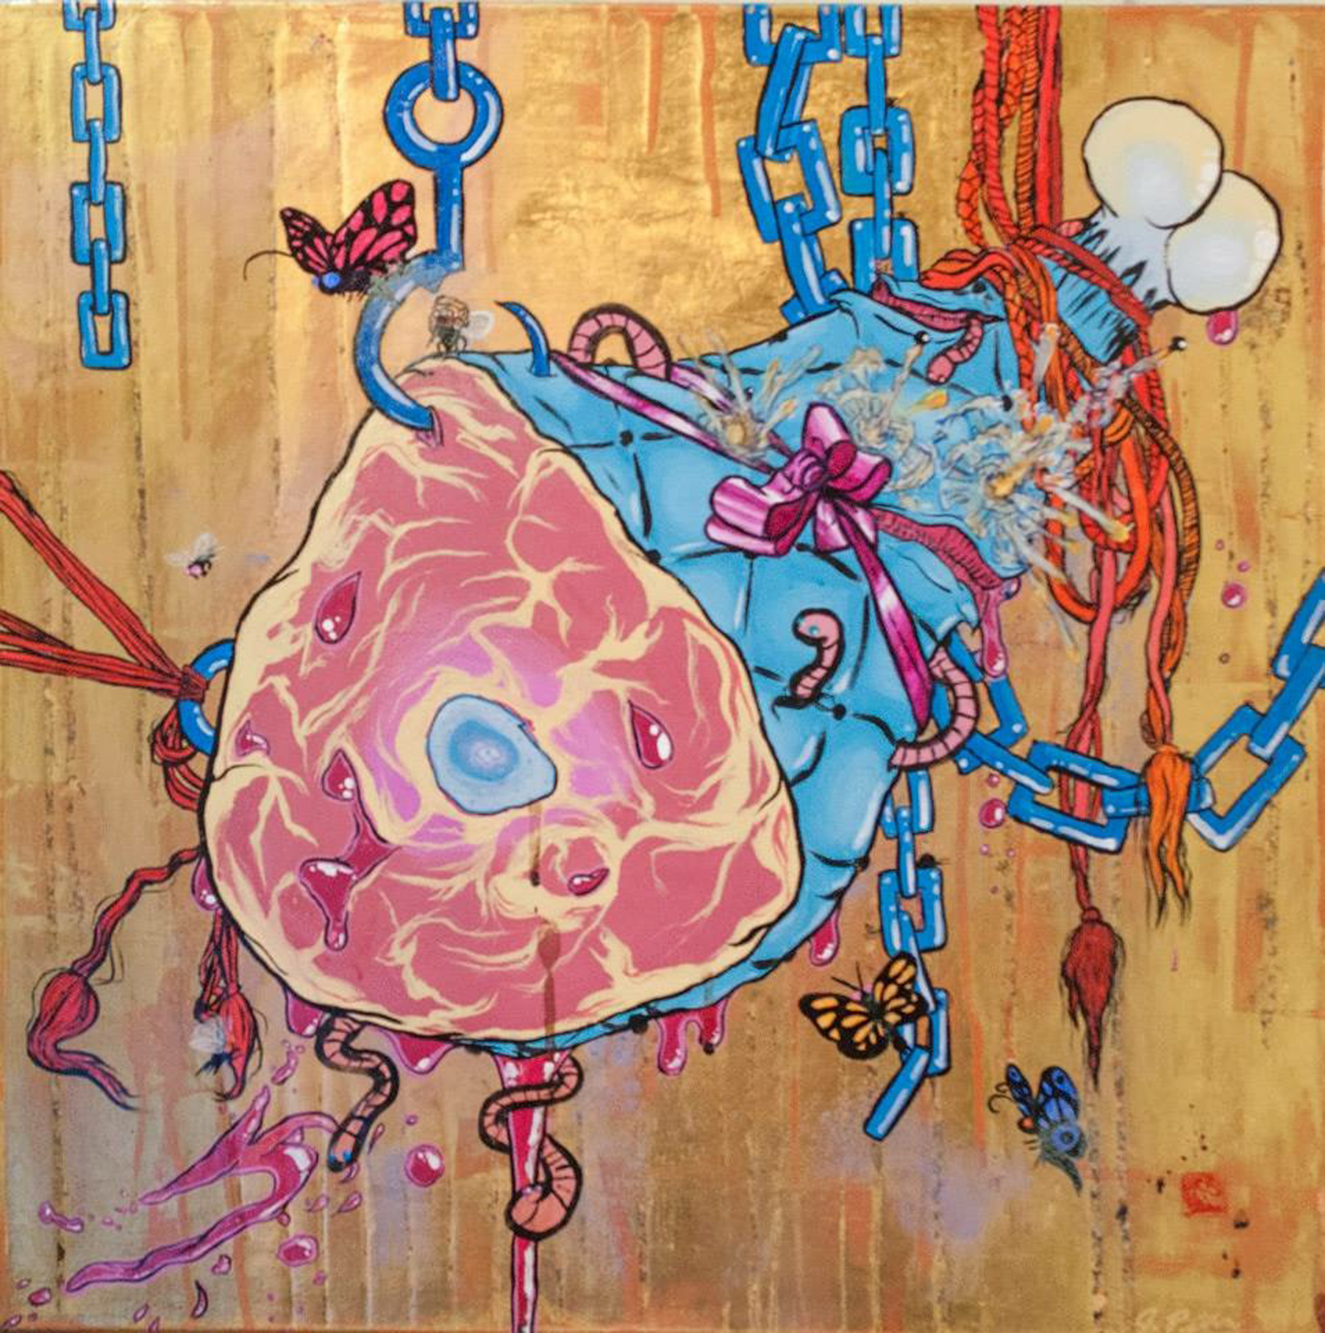 Bound Ham (The Root of All Suffering is Desire), 2013